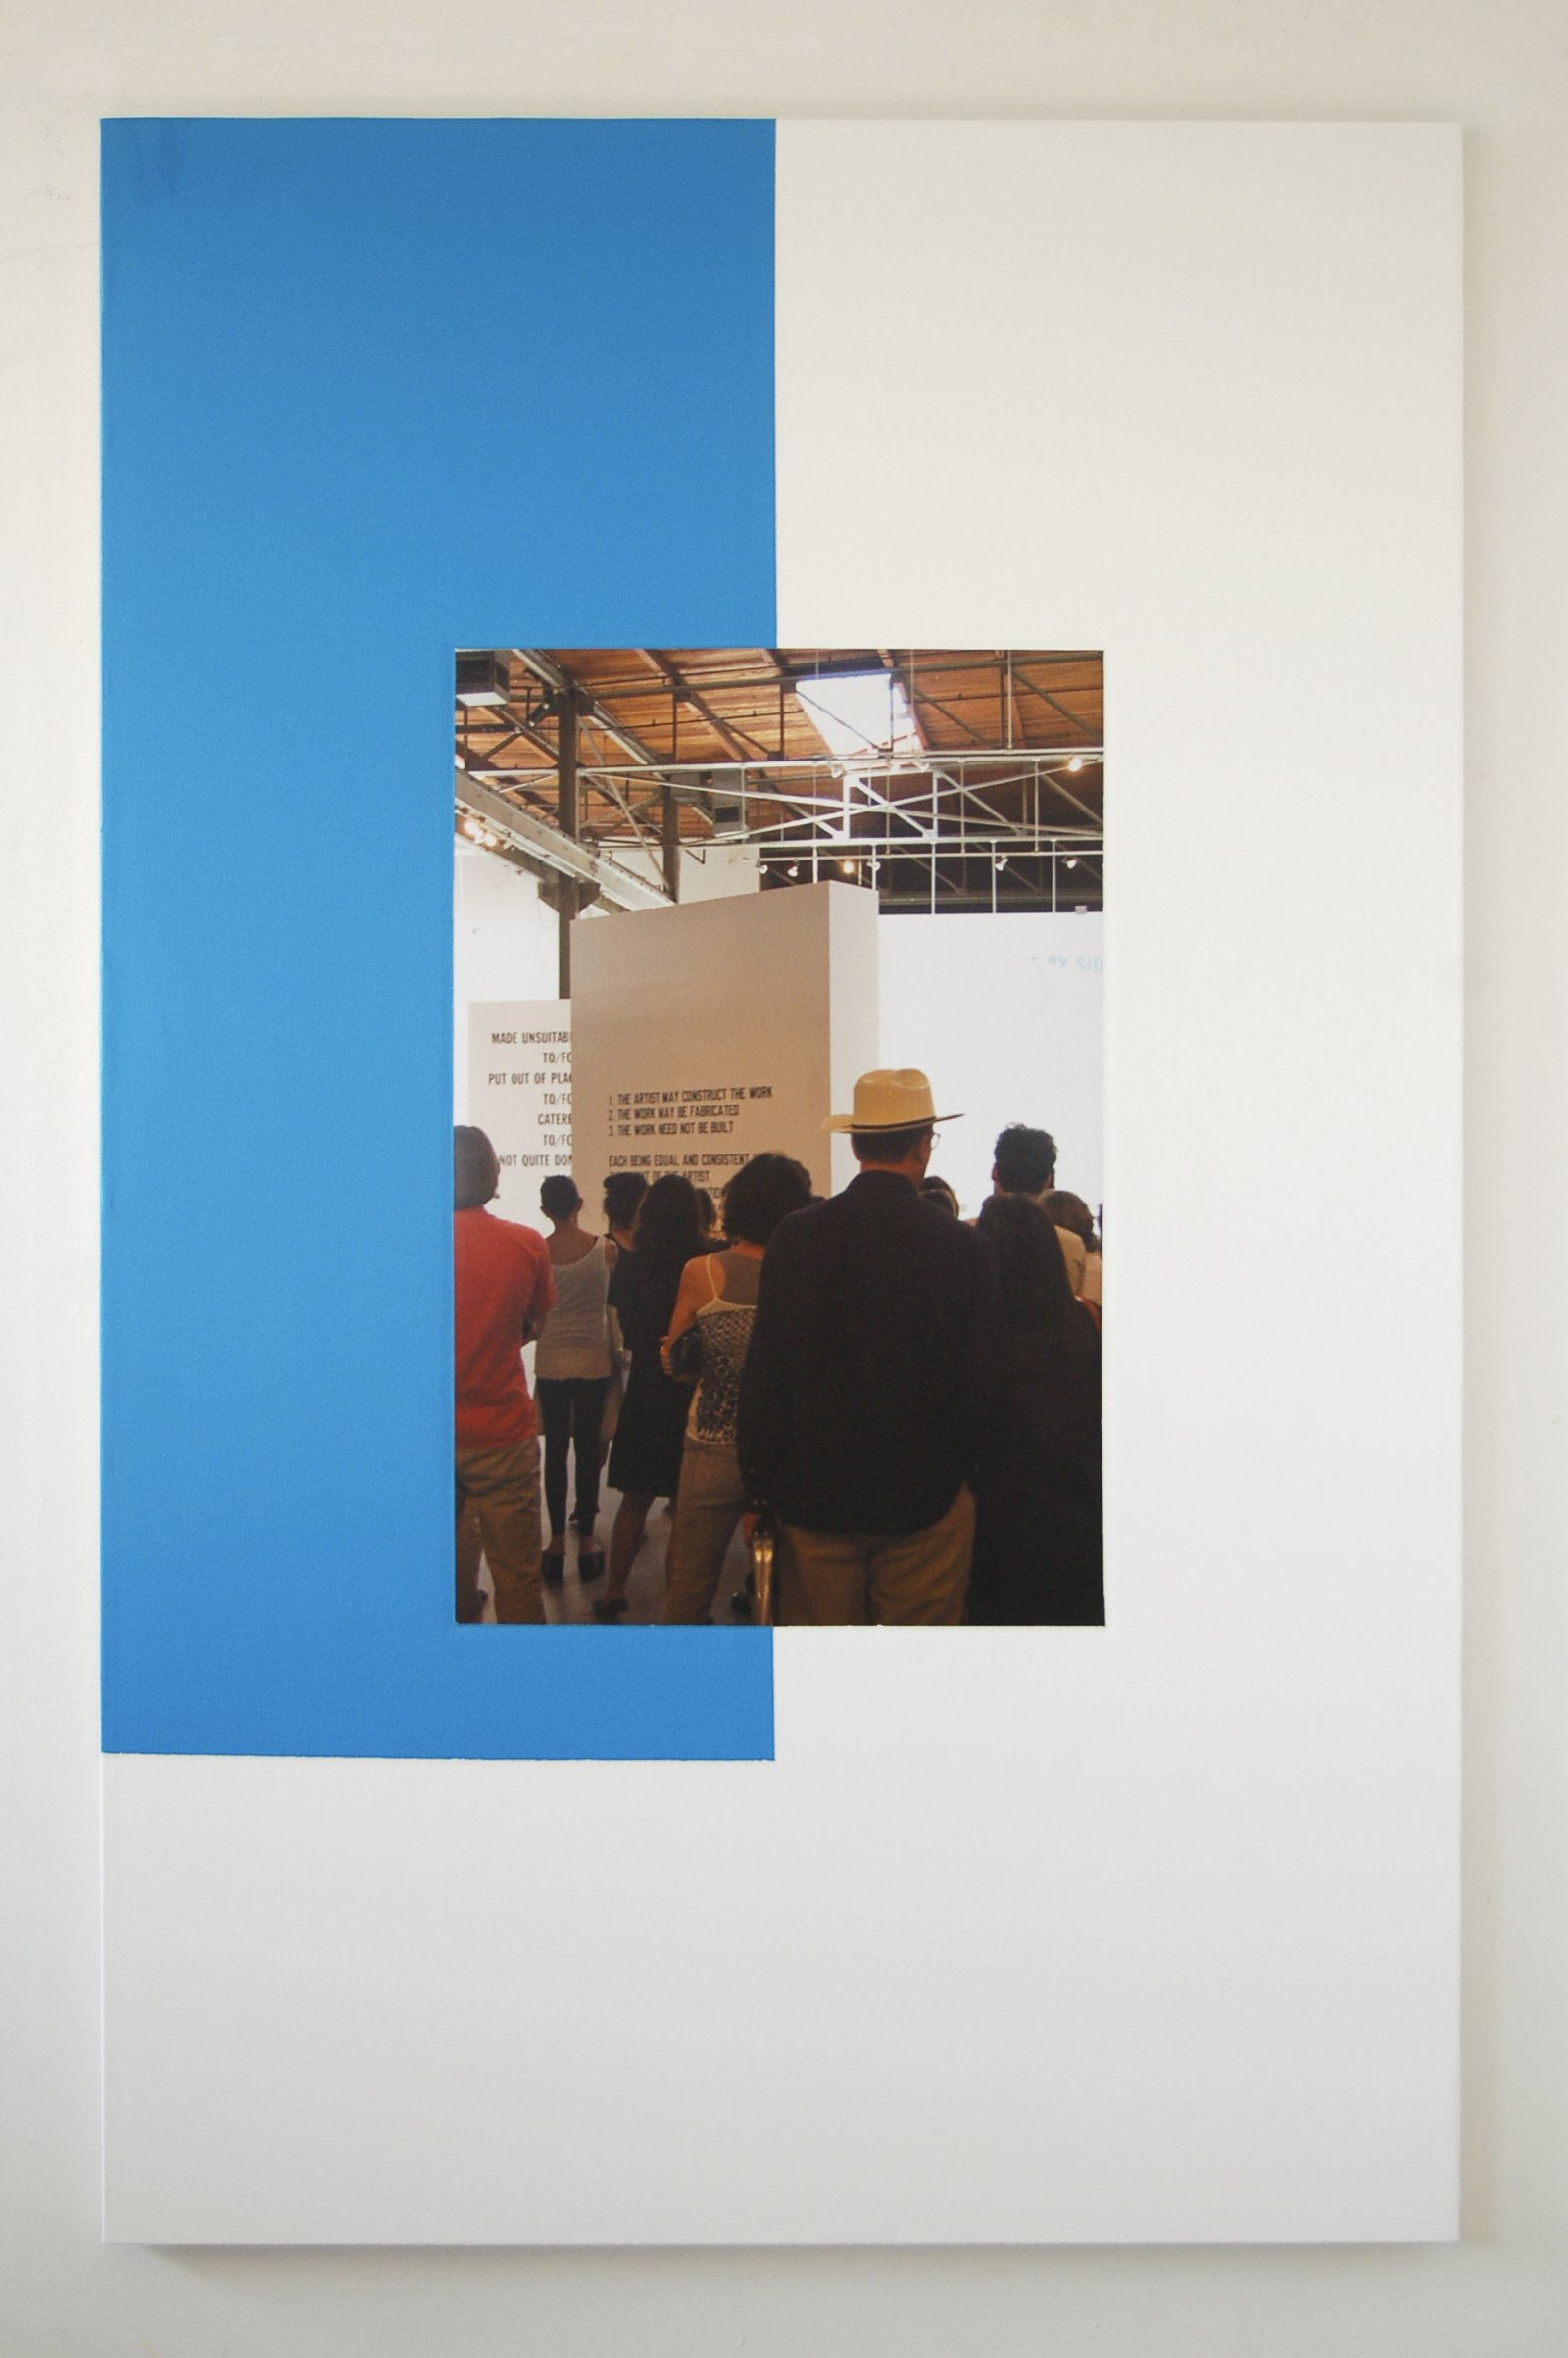 Ian Wallace,In the Museum Los Angeles, 2009,photolaminate and acrylic on canvas,78 x 48 in. (198 x 122 cm)